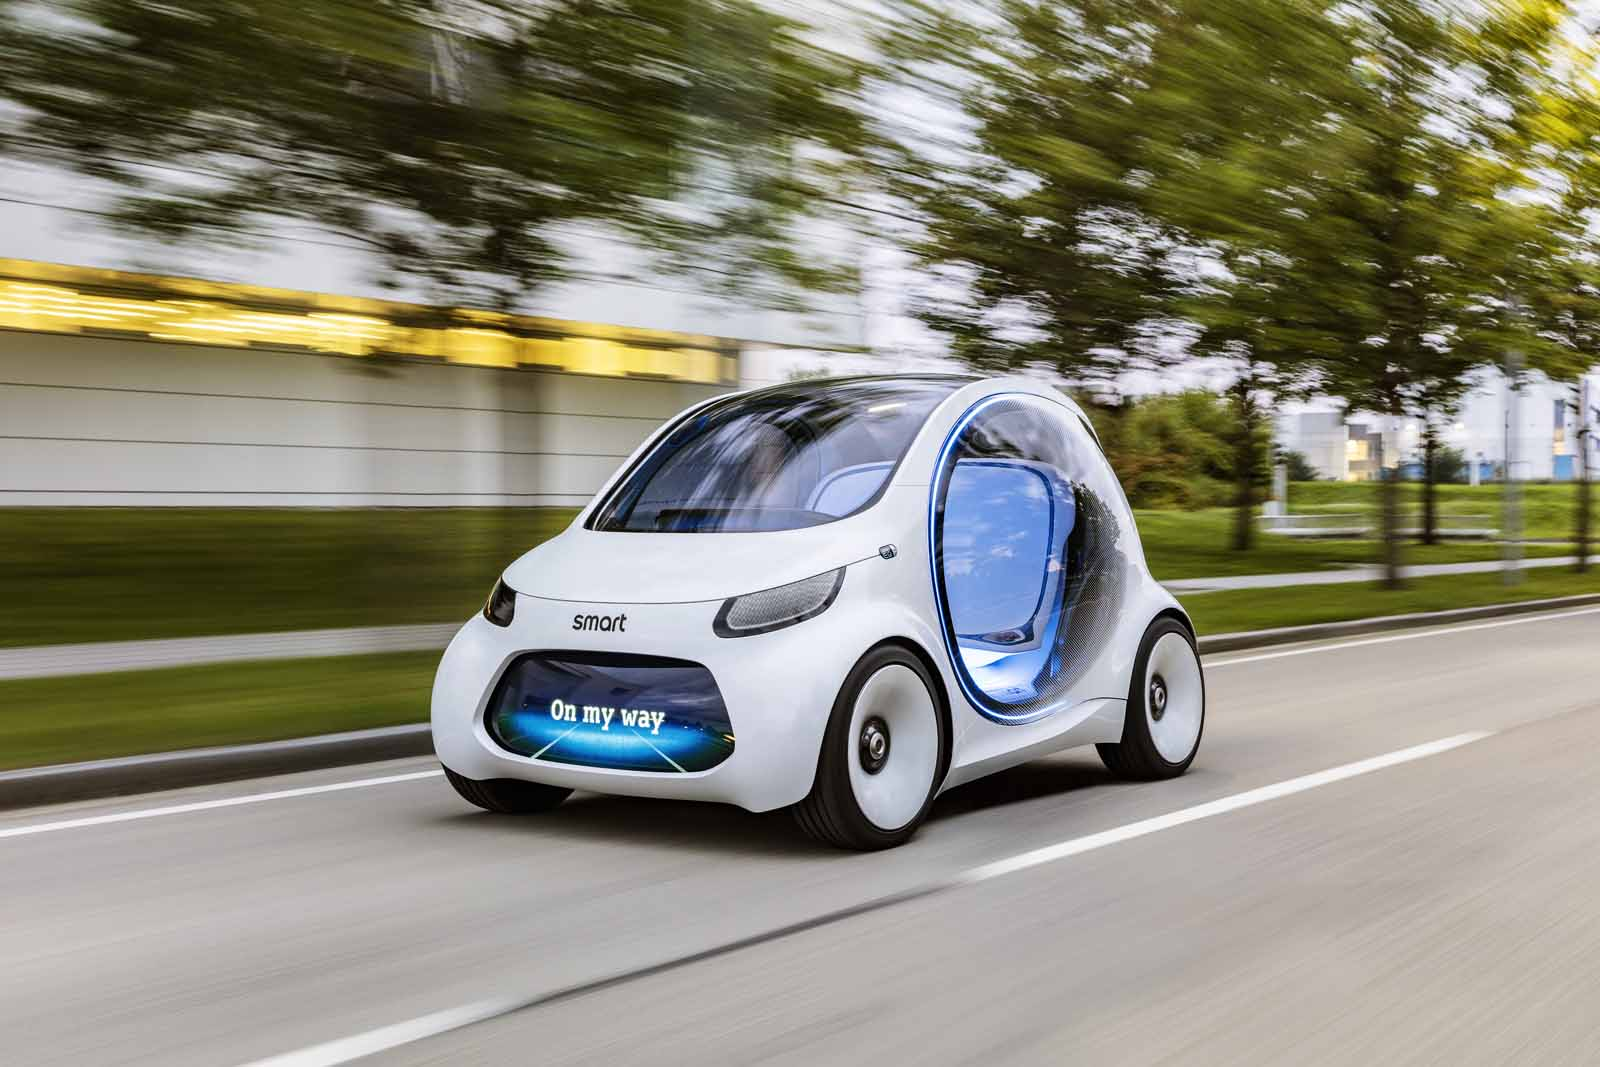 Smart Vision EQ ForTwo previews autonomous electric future